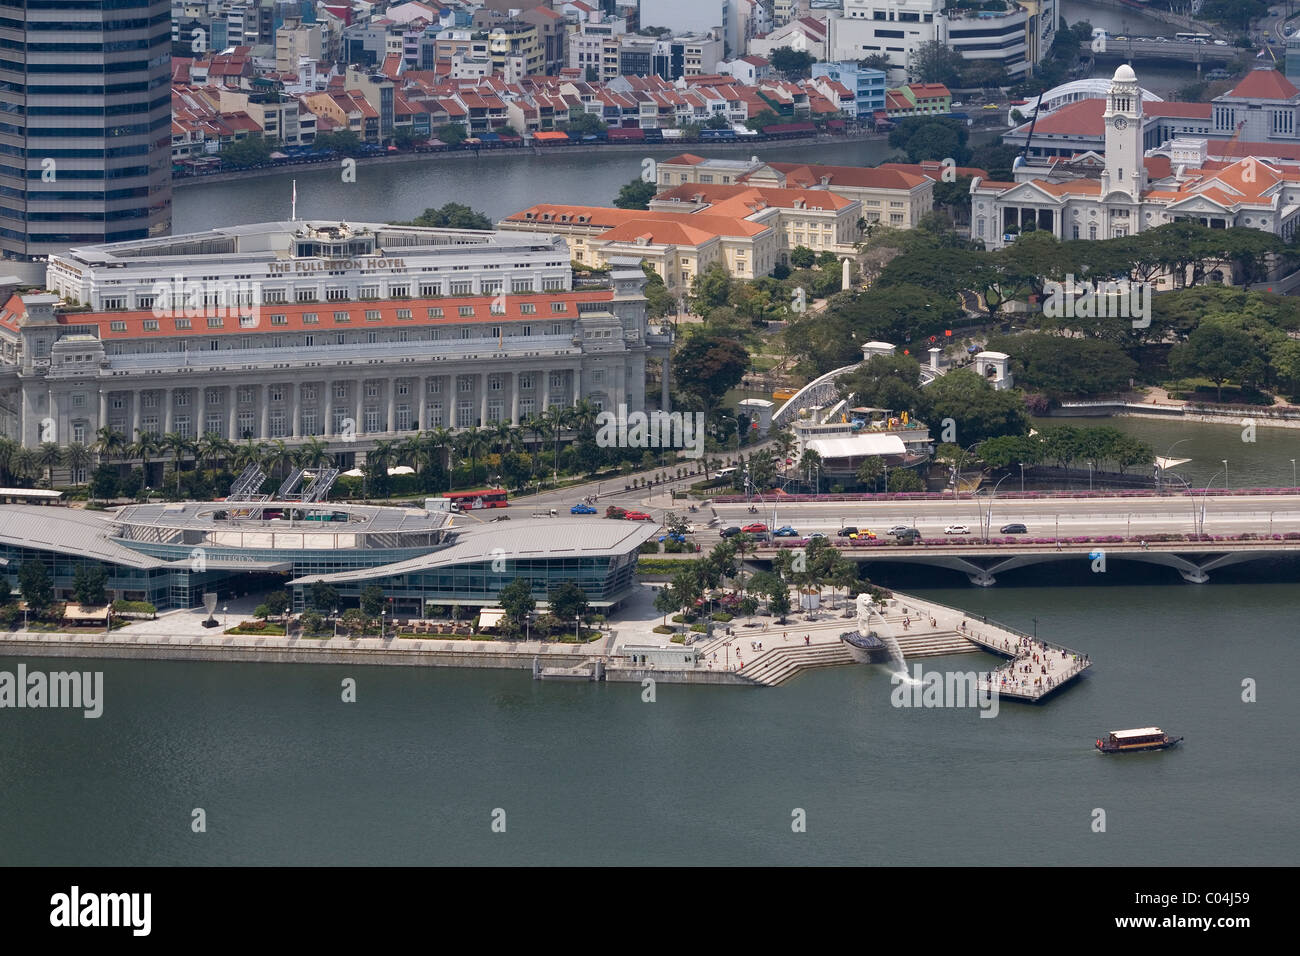 Singapore Fullerton hotel from roof of Marina Bay Sands - Stock Image